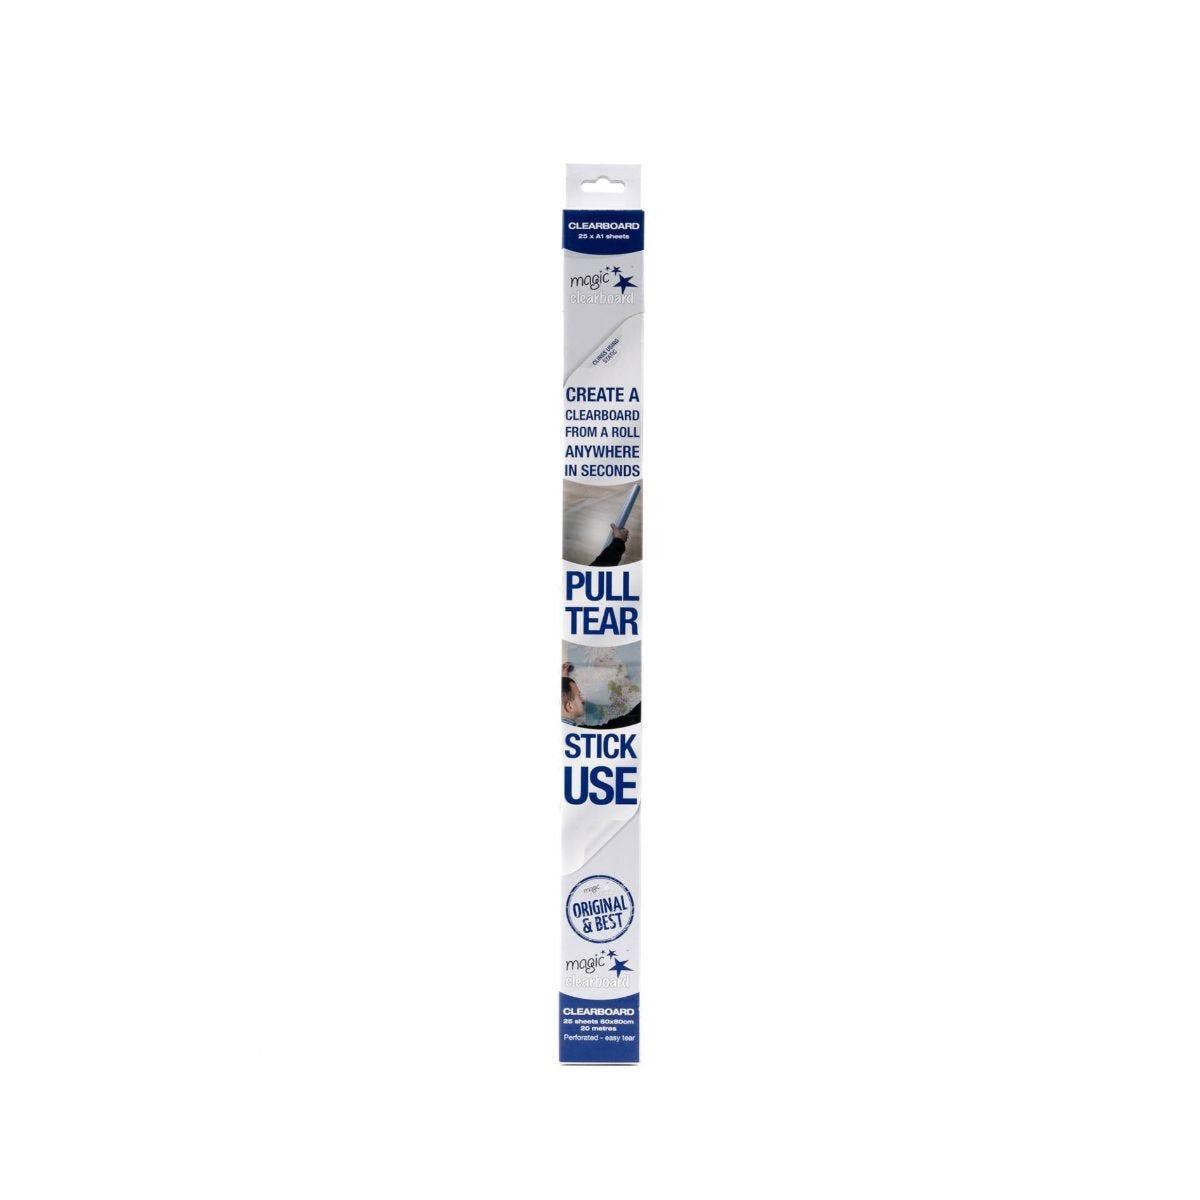 Magic Clearboard 25 Sheet Roll A1